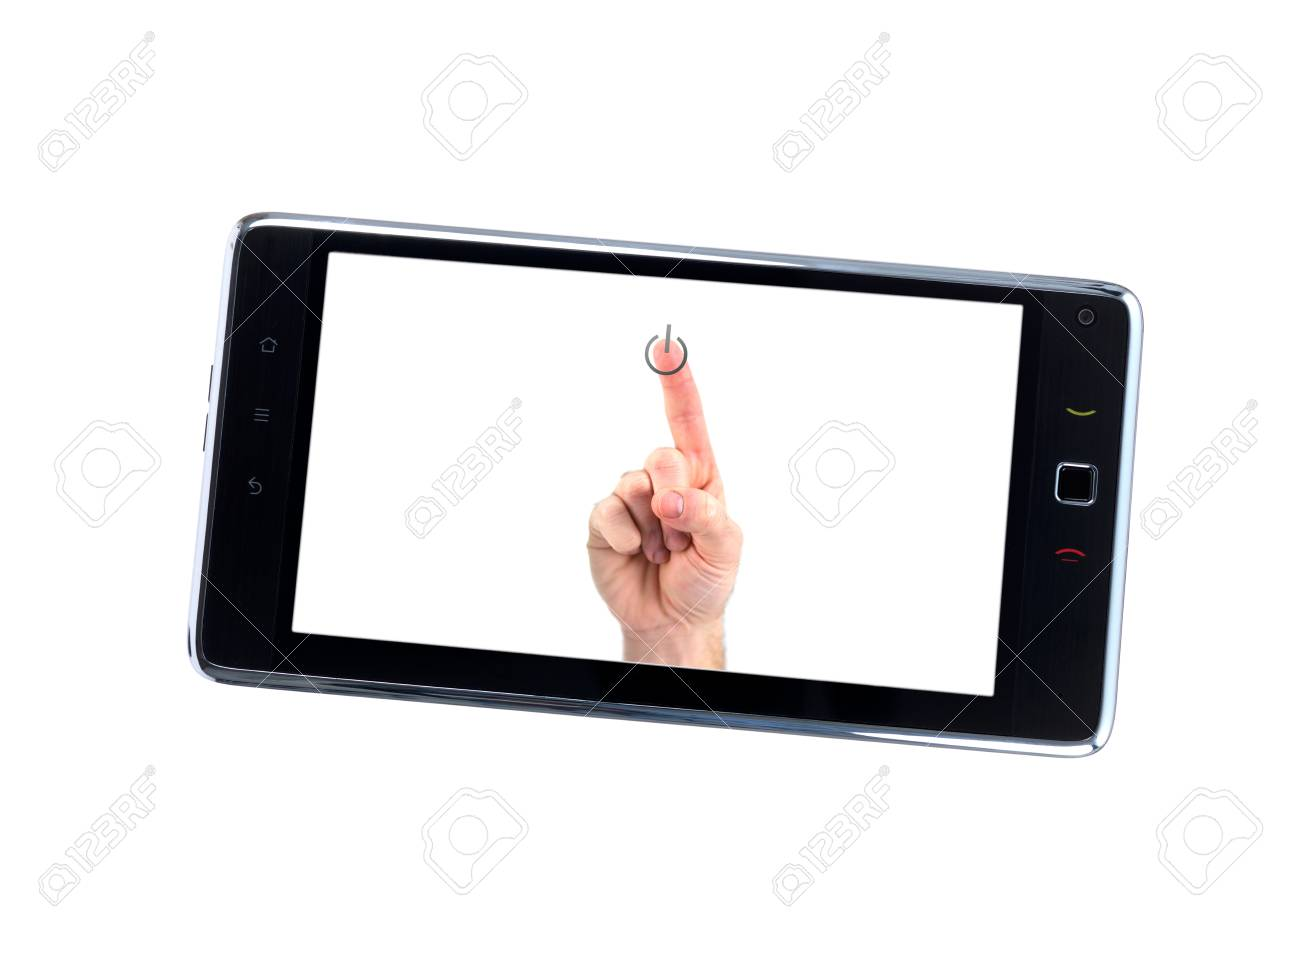 pc tablet isolated against a white background Stock Photo - 8446379